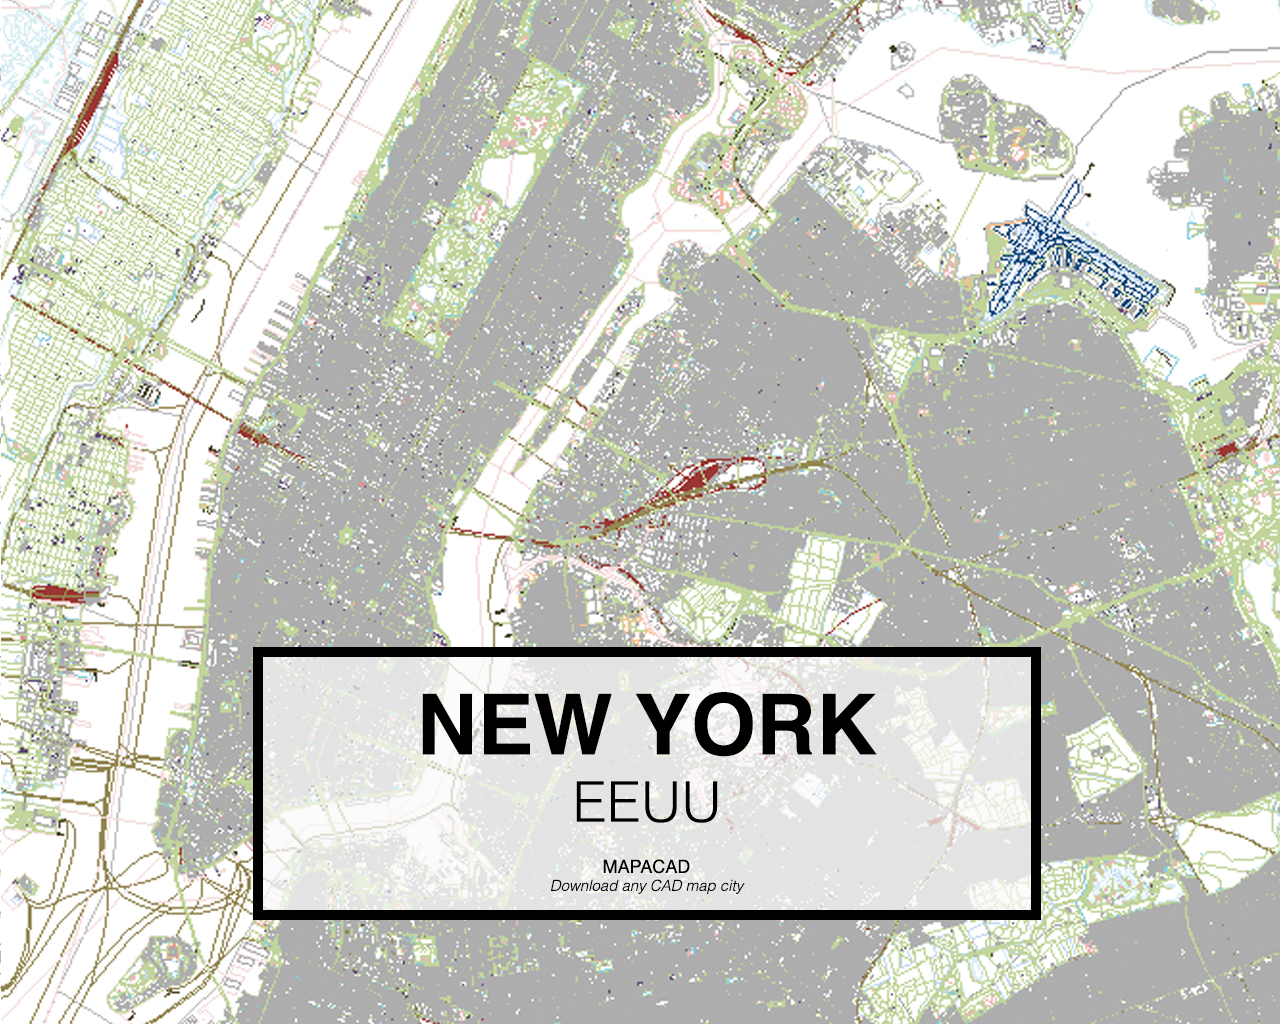 Download new york dwg mapacad new york eeuu 01 mapacad download map cad gumiabroncs Gallery